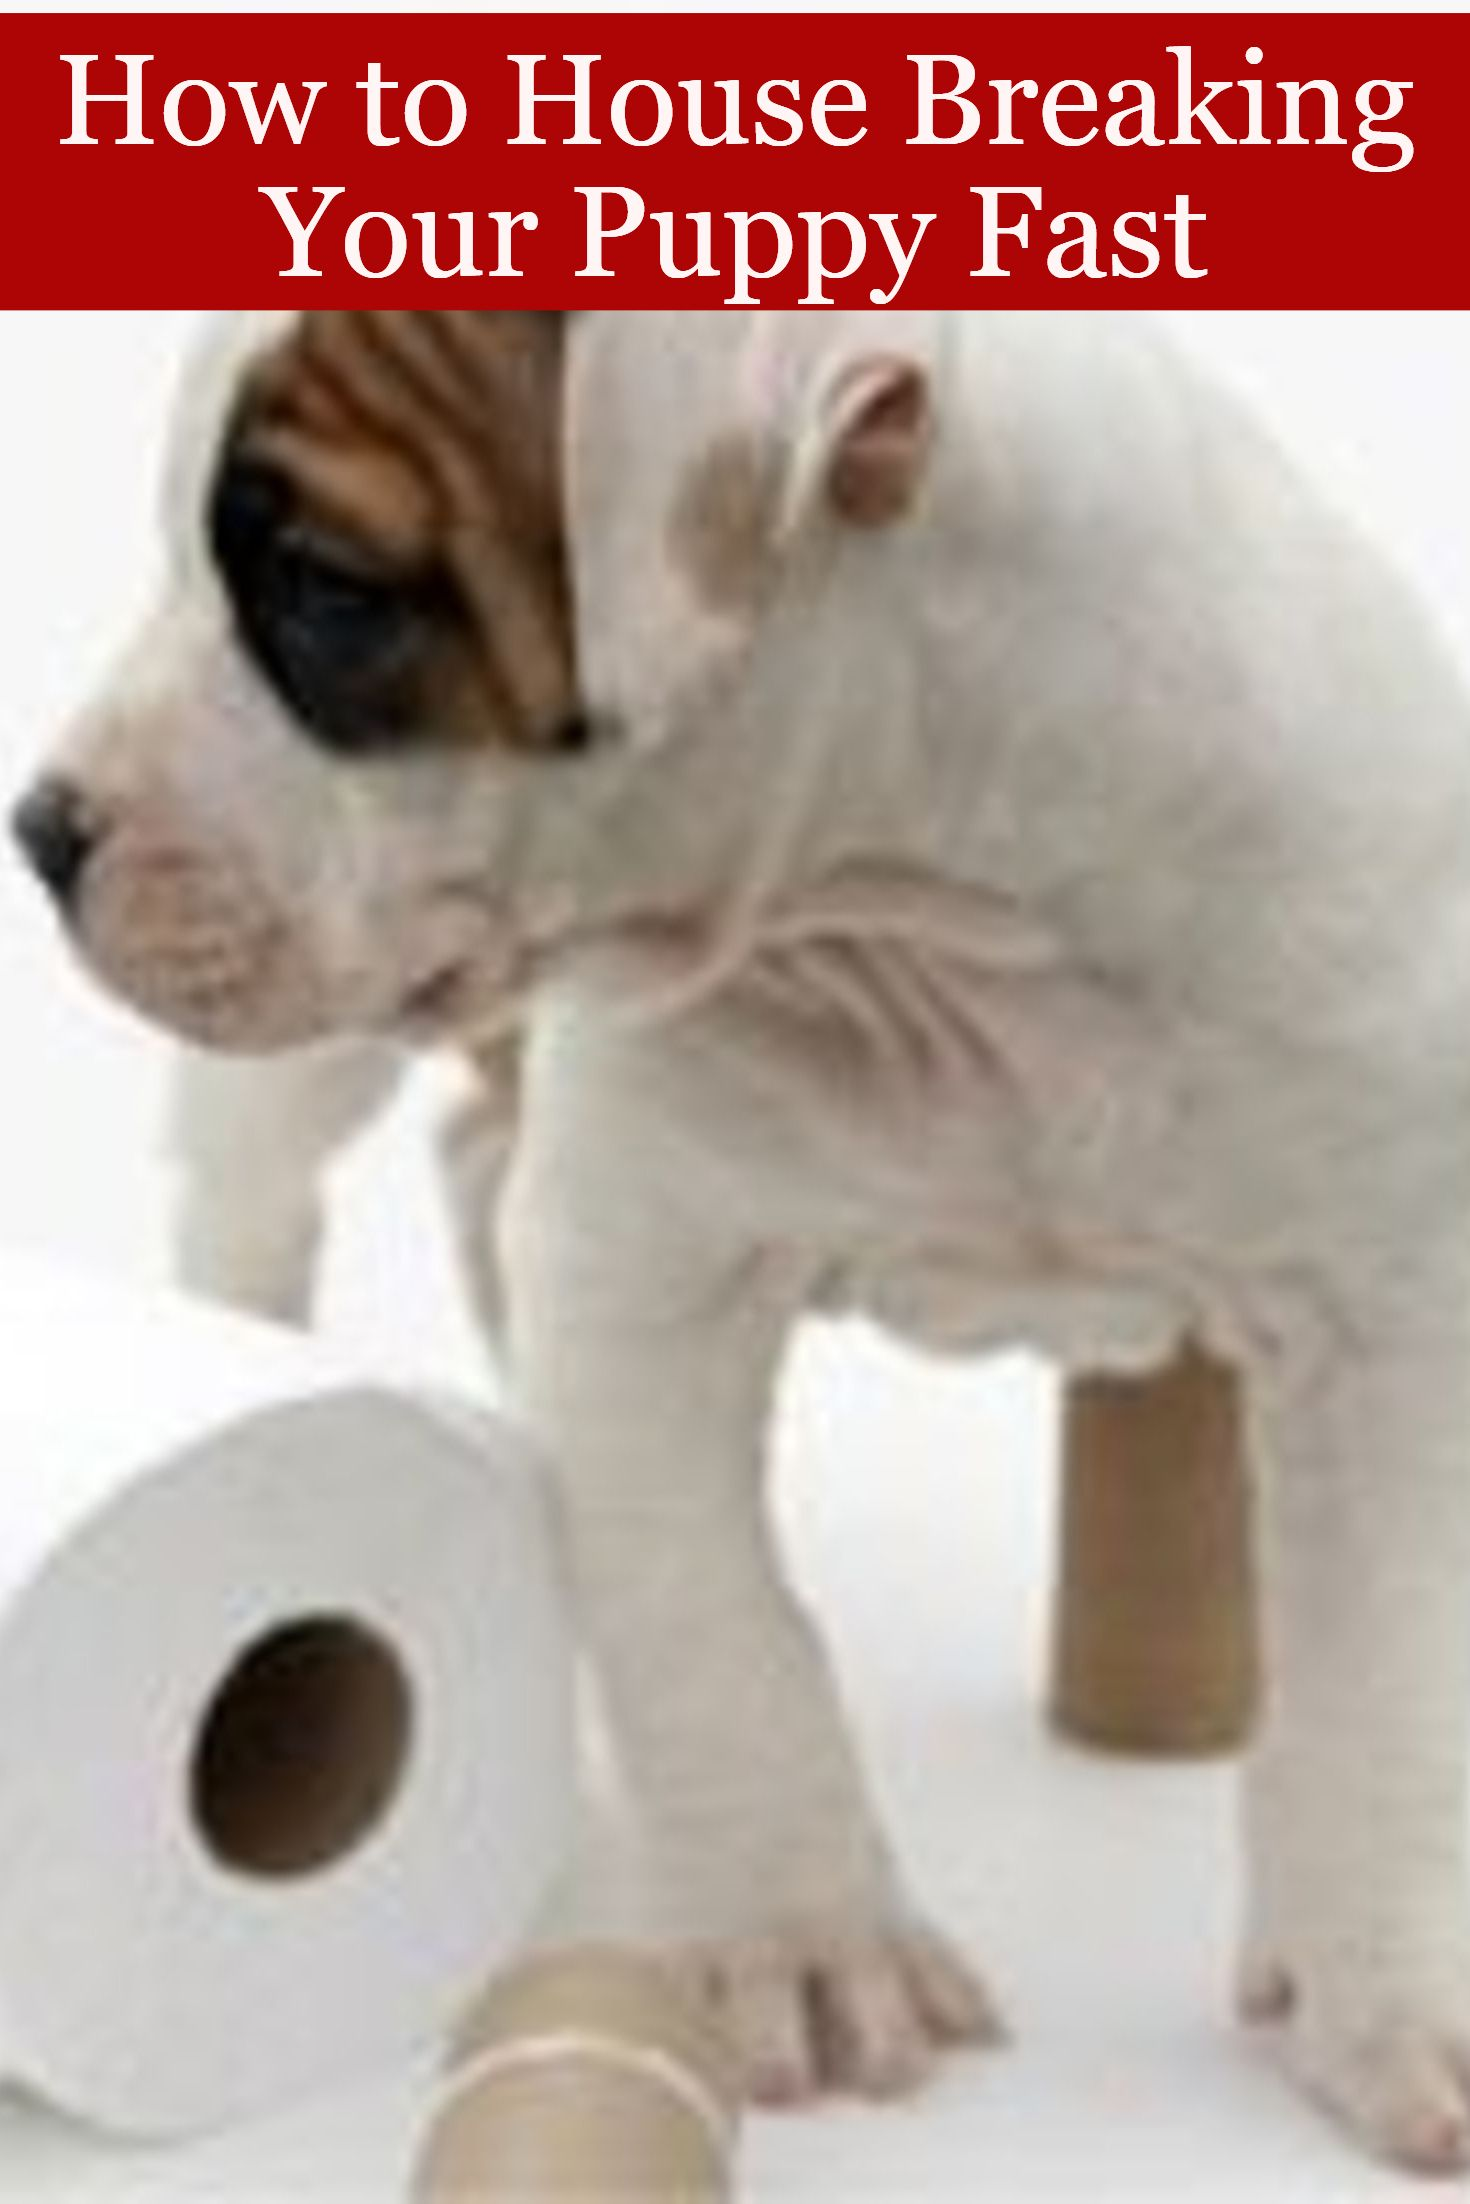 How To House Breaking Your Puppy Fast Puppy Pinterest Puppies